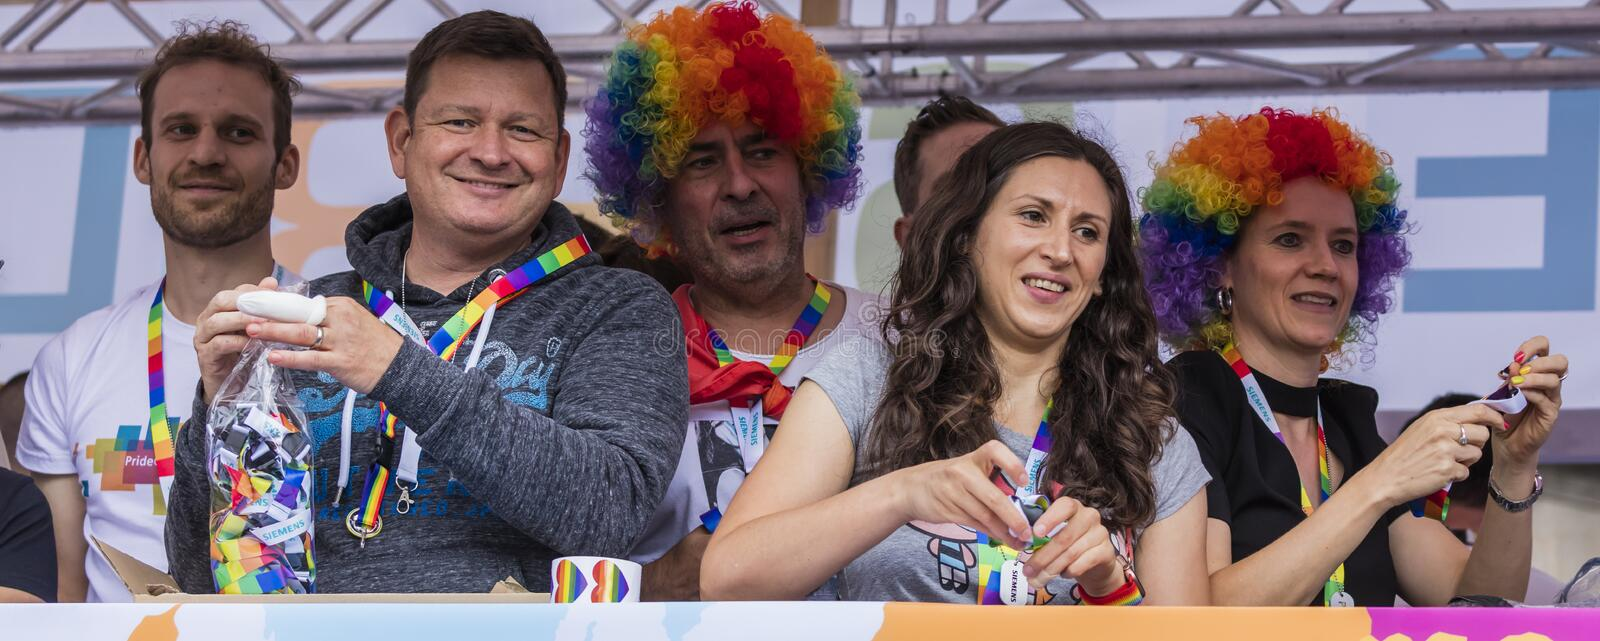 People on a float attending the Gay Pride parade also known as Christopher Street Day CSD in Munich, Germany. 2019: People on a float attending the Gay Pride royalty free stock image